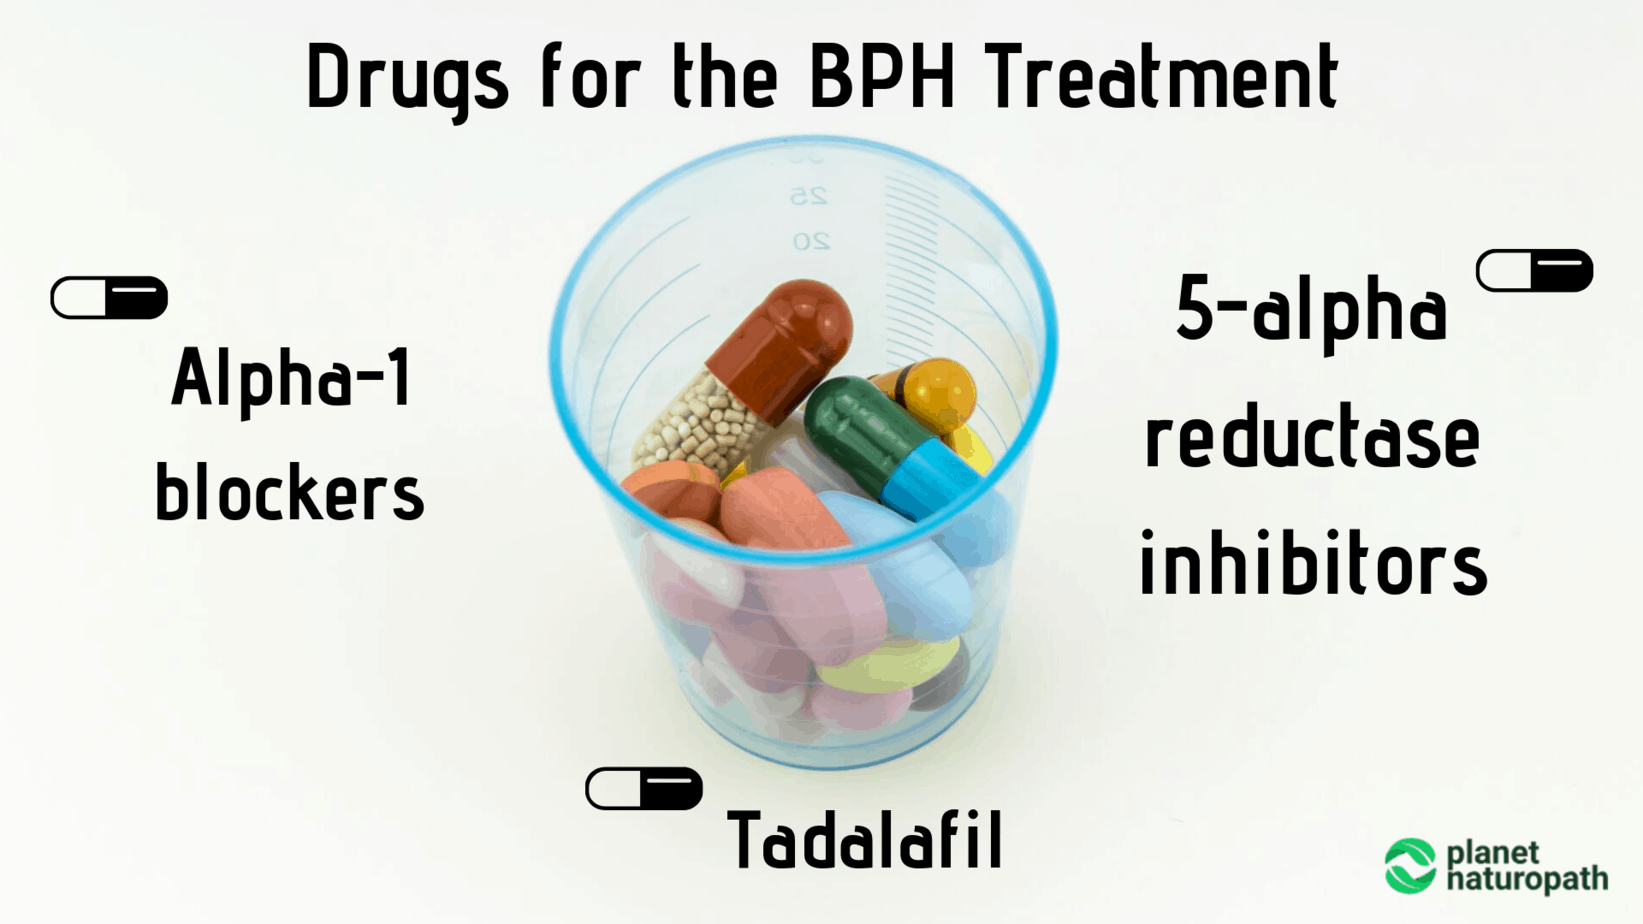 Drugs-for-the-BPH-Treatment